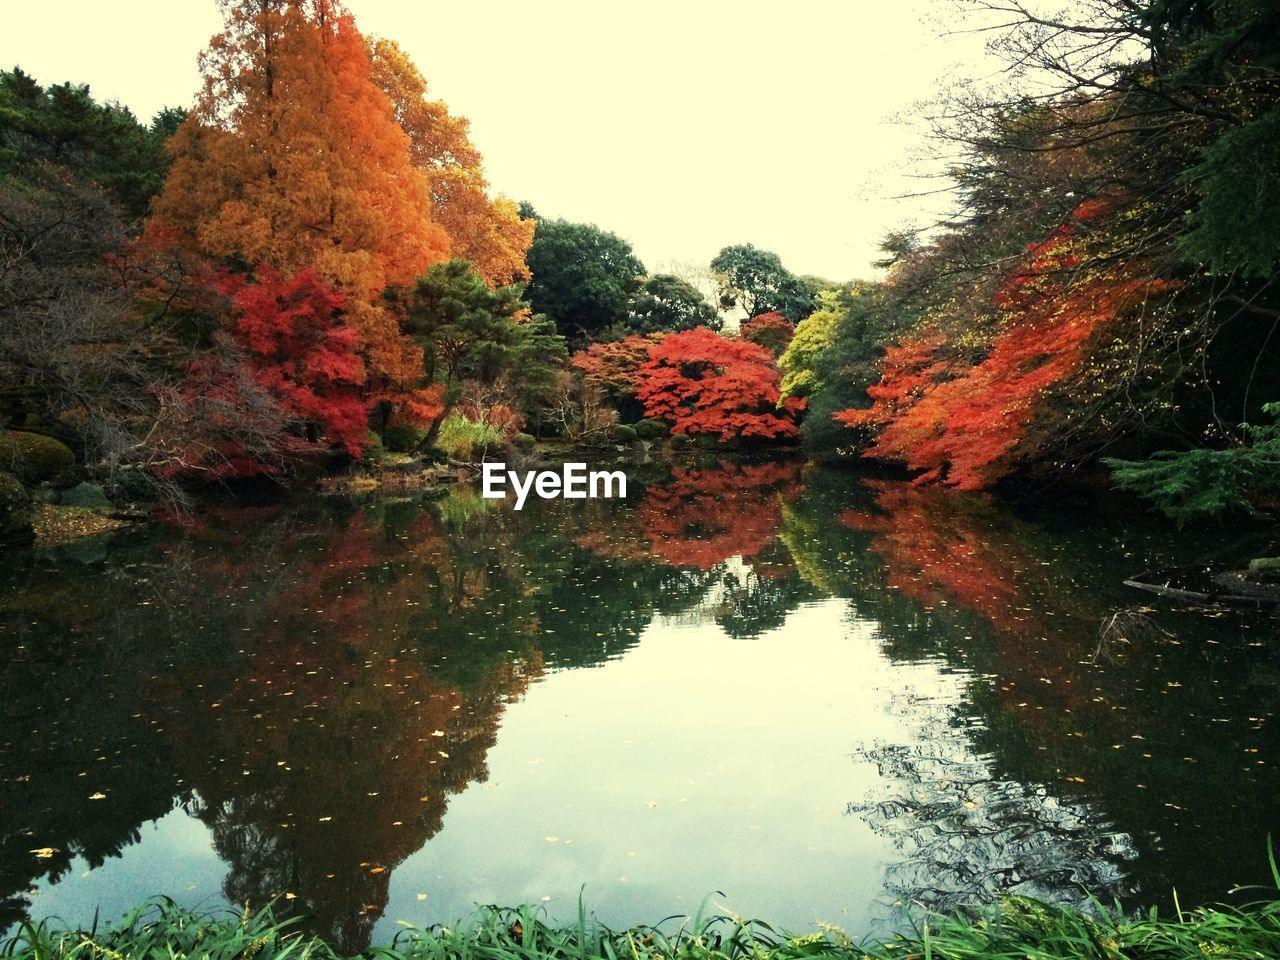 Scenic view of lake with trees reflection during autumn